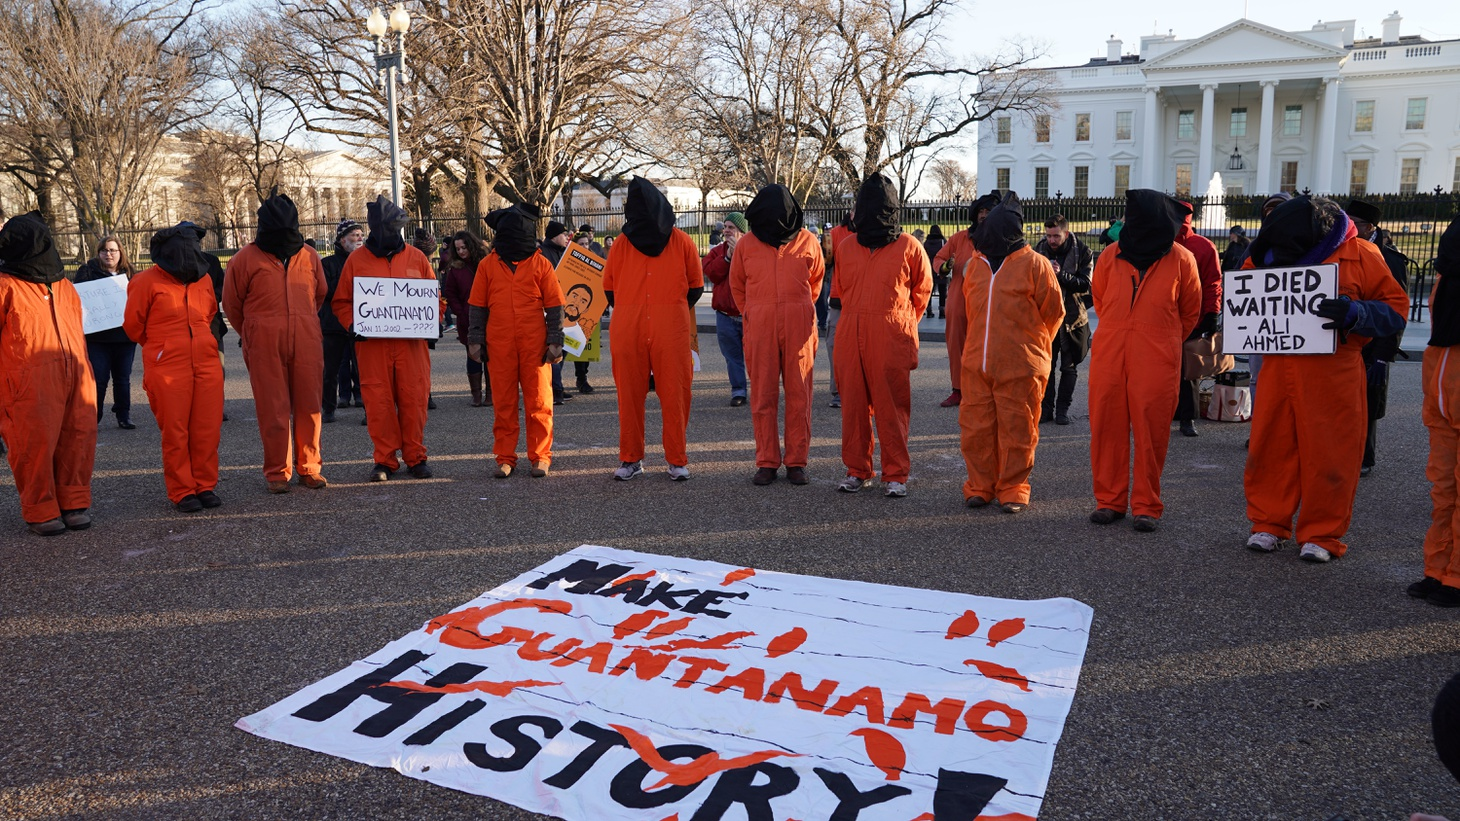 Witness Against Torture activists demonstrate at the White House, calling for the closing of the Guantánamo Bay detention camp on the 17th anniversary of its opening, January 11, 2019.